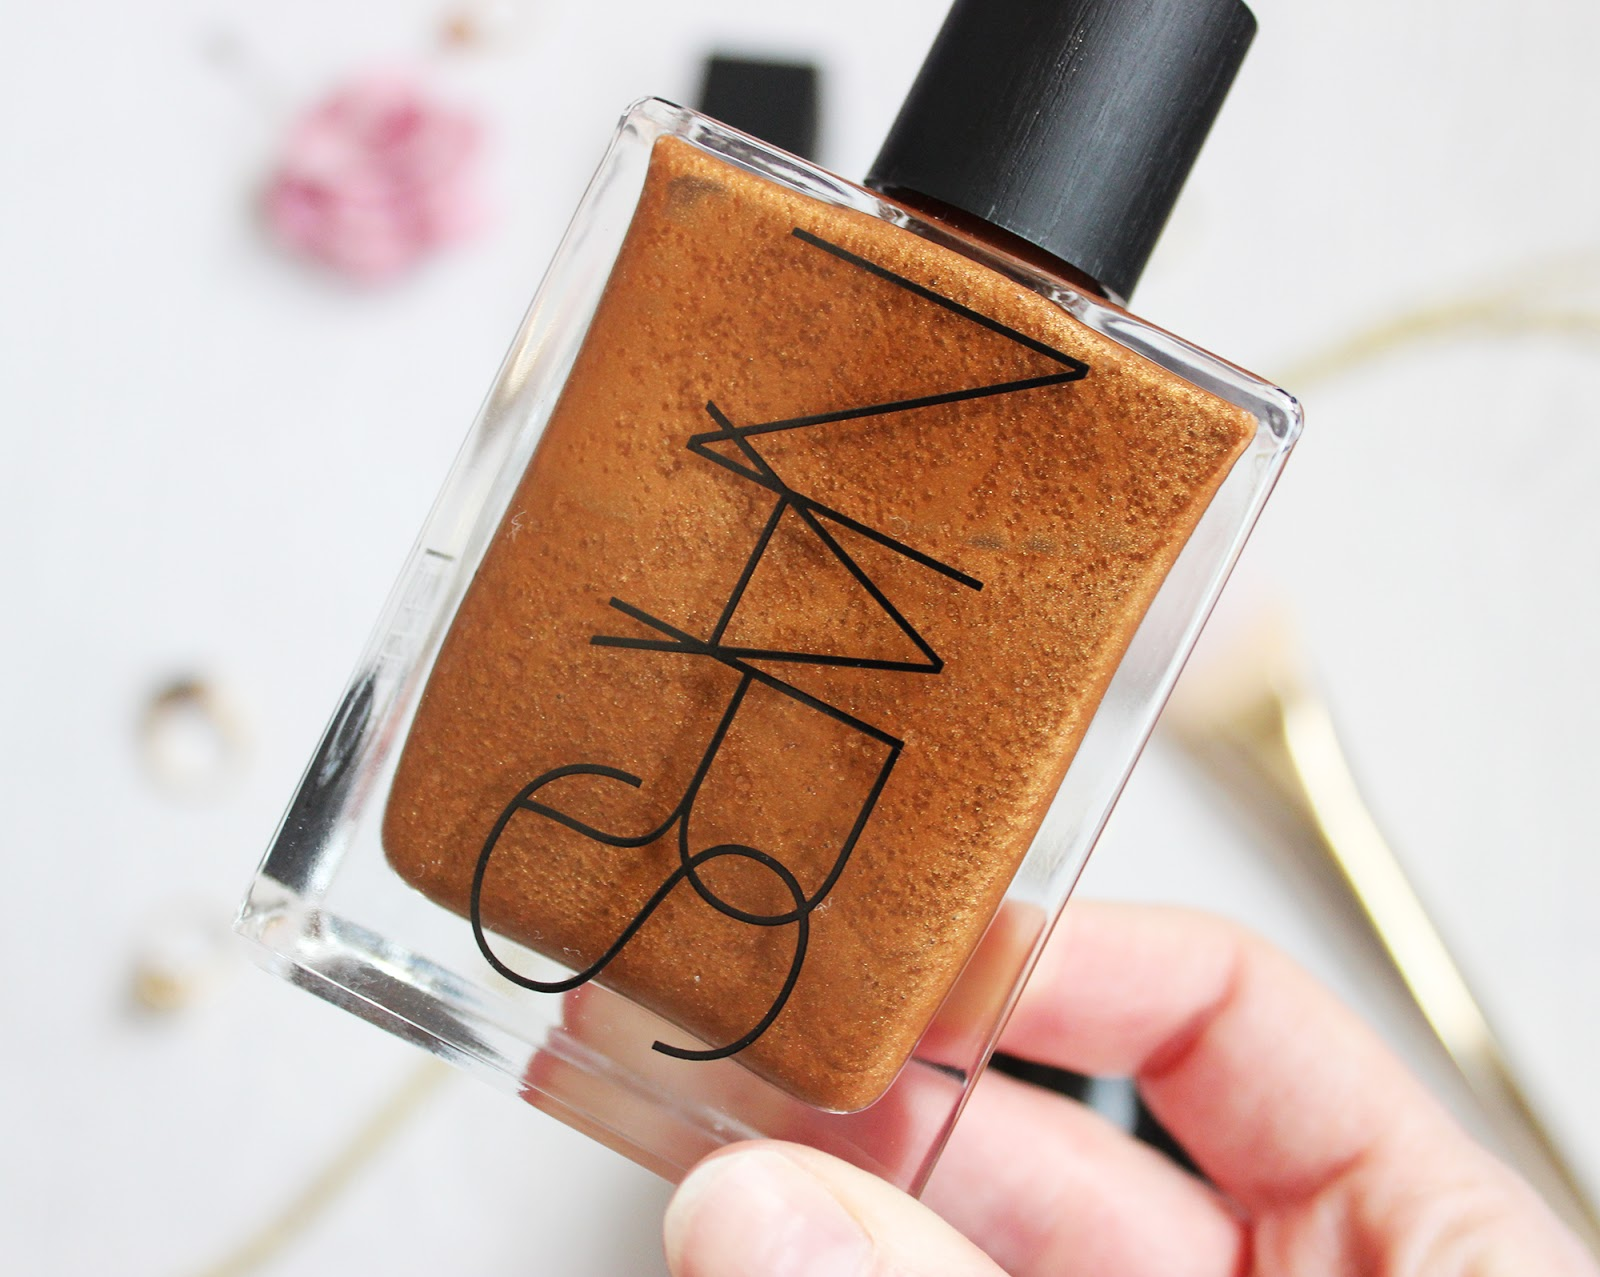 NARS tahiti summer bronzing collection review Monoi body glow